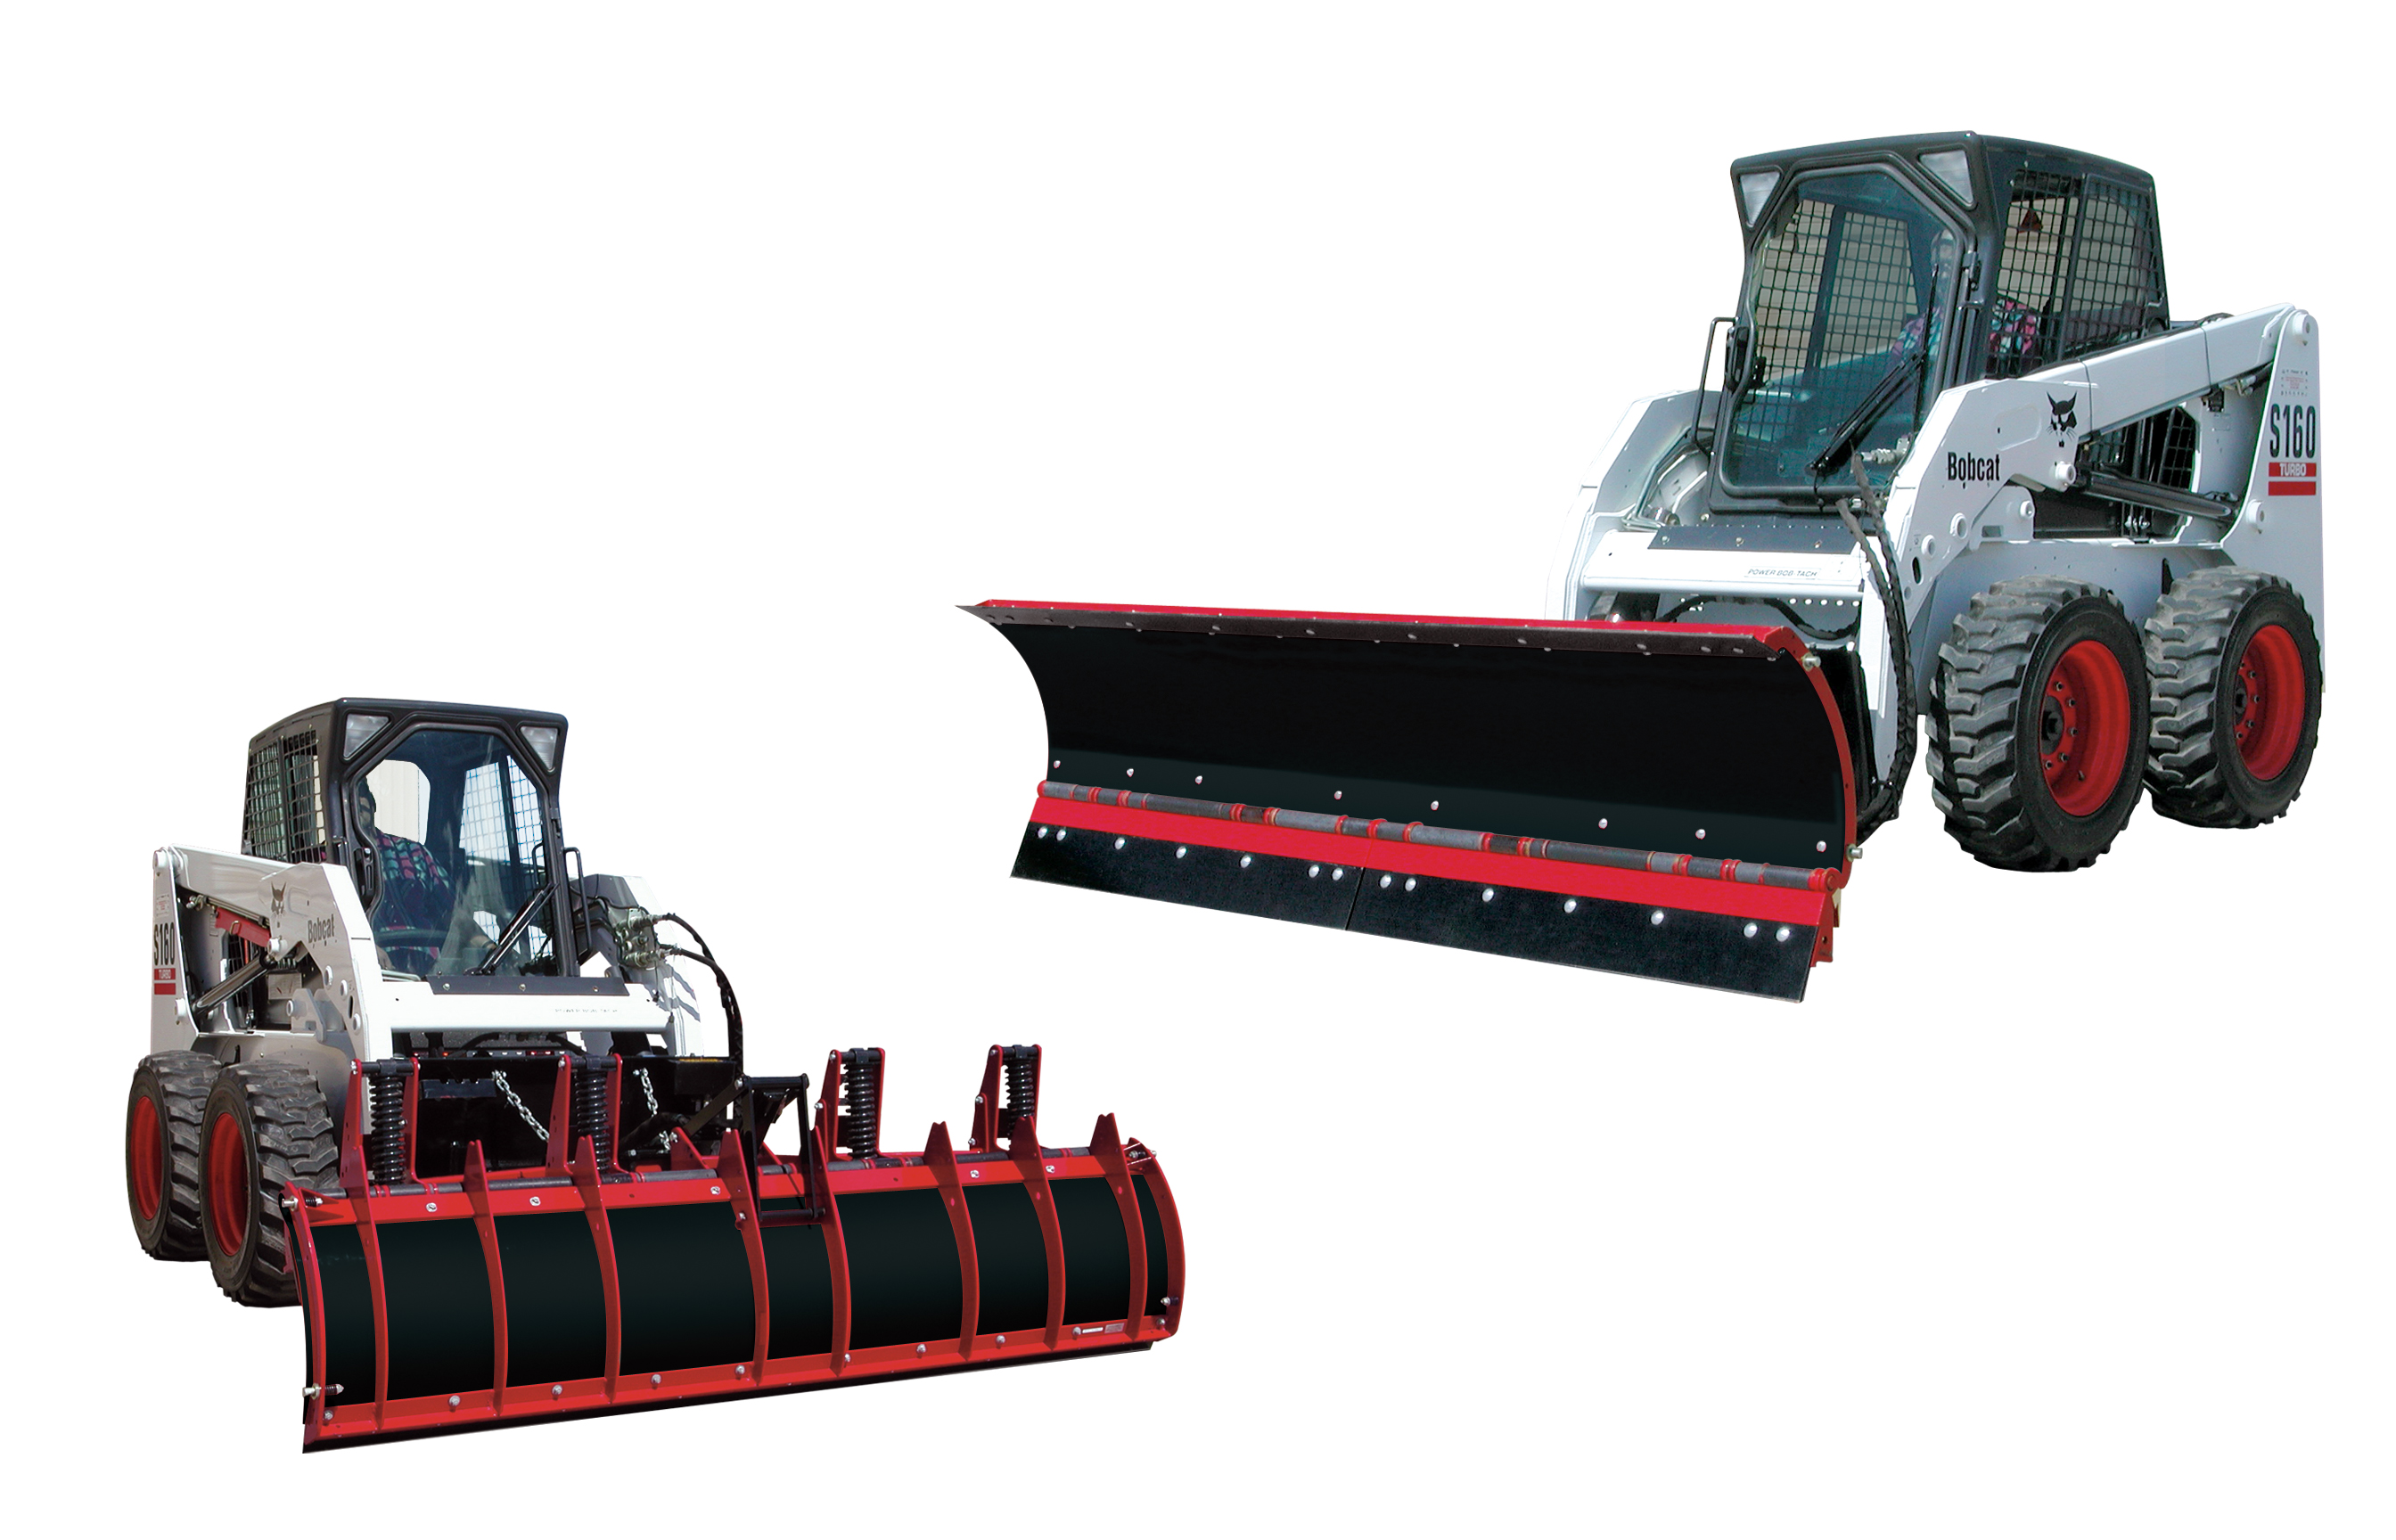 SOLD OUT New Hiniker 2881 Model, C-Plow Compression Spring Trip with crossover relief valve Poly C-Plow, Skid Steer